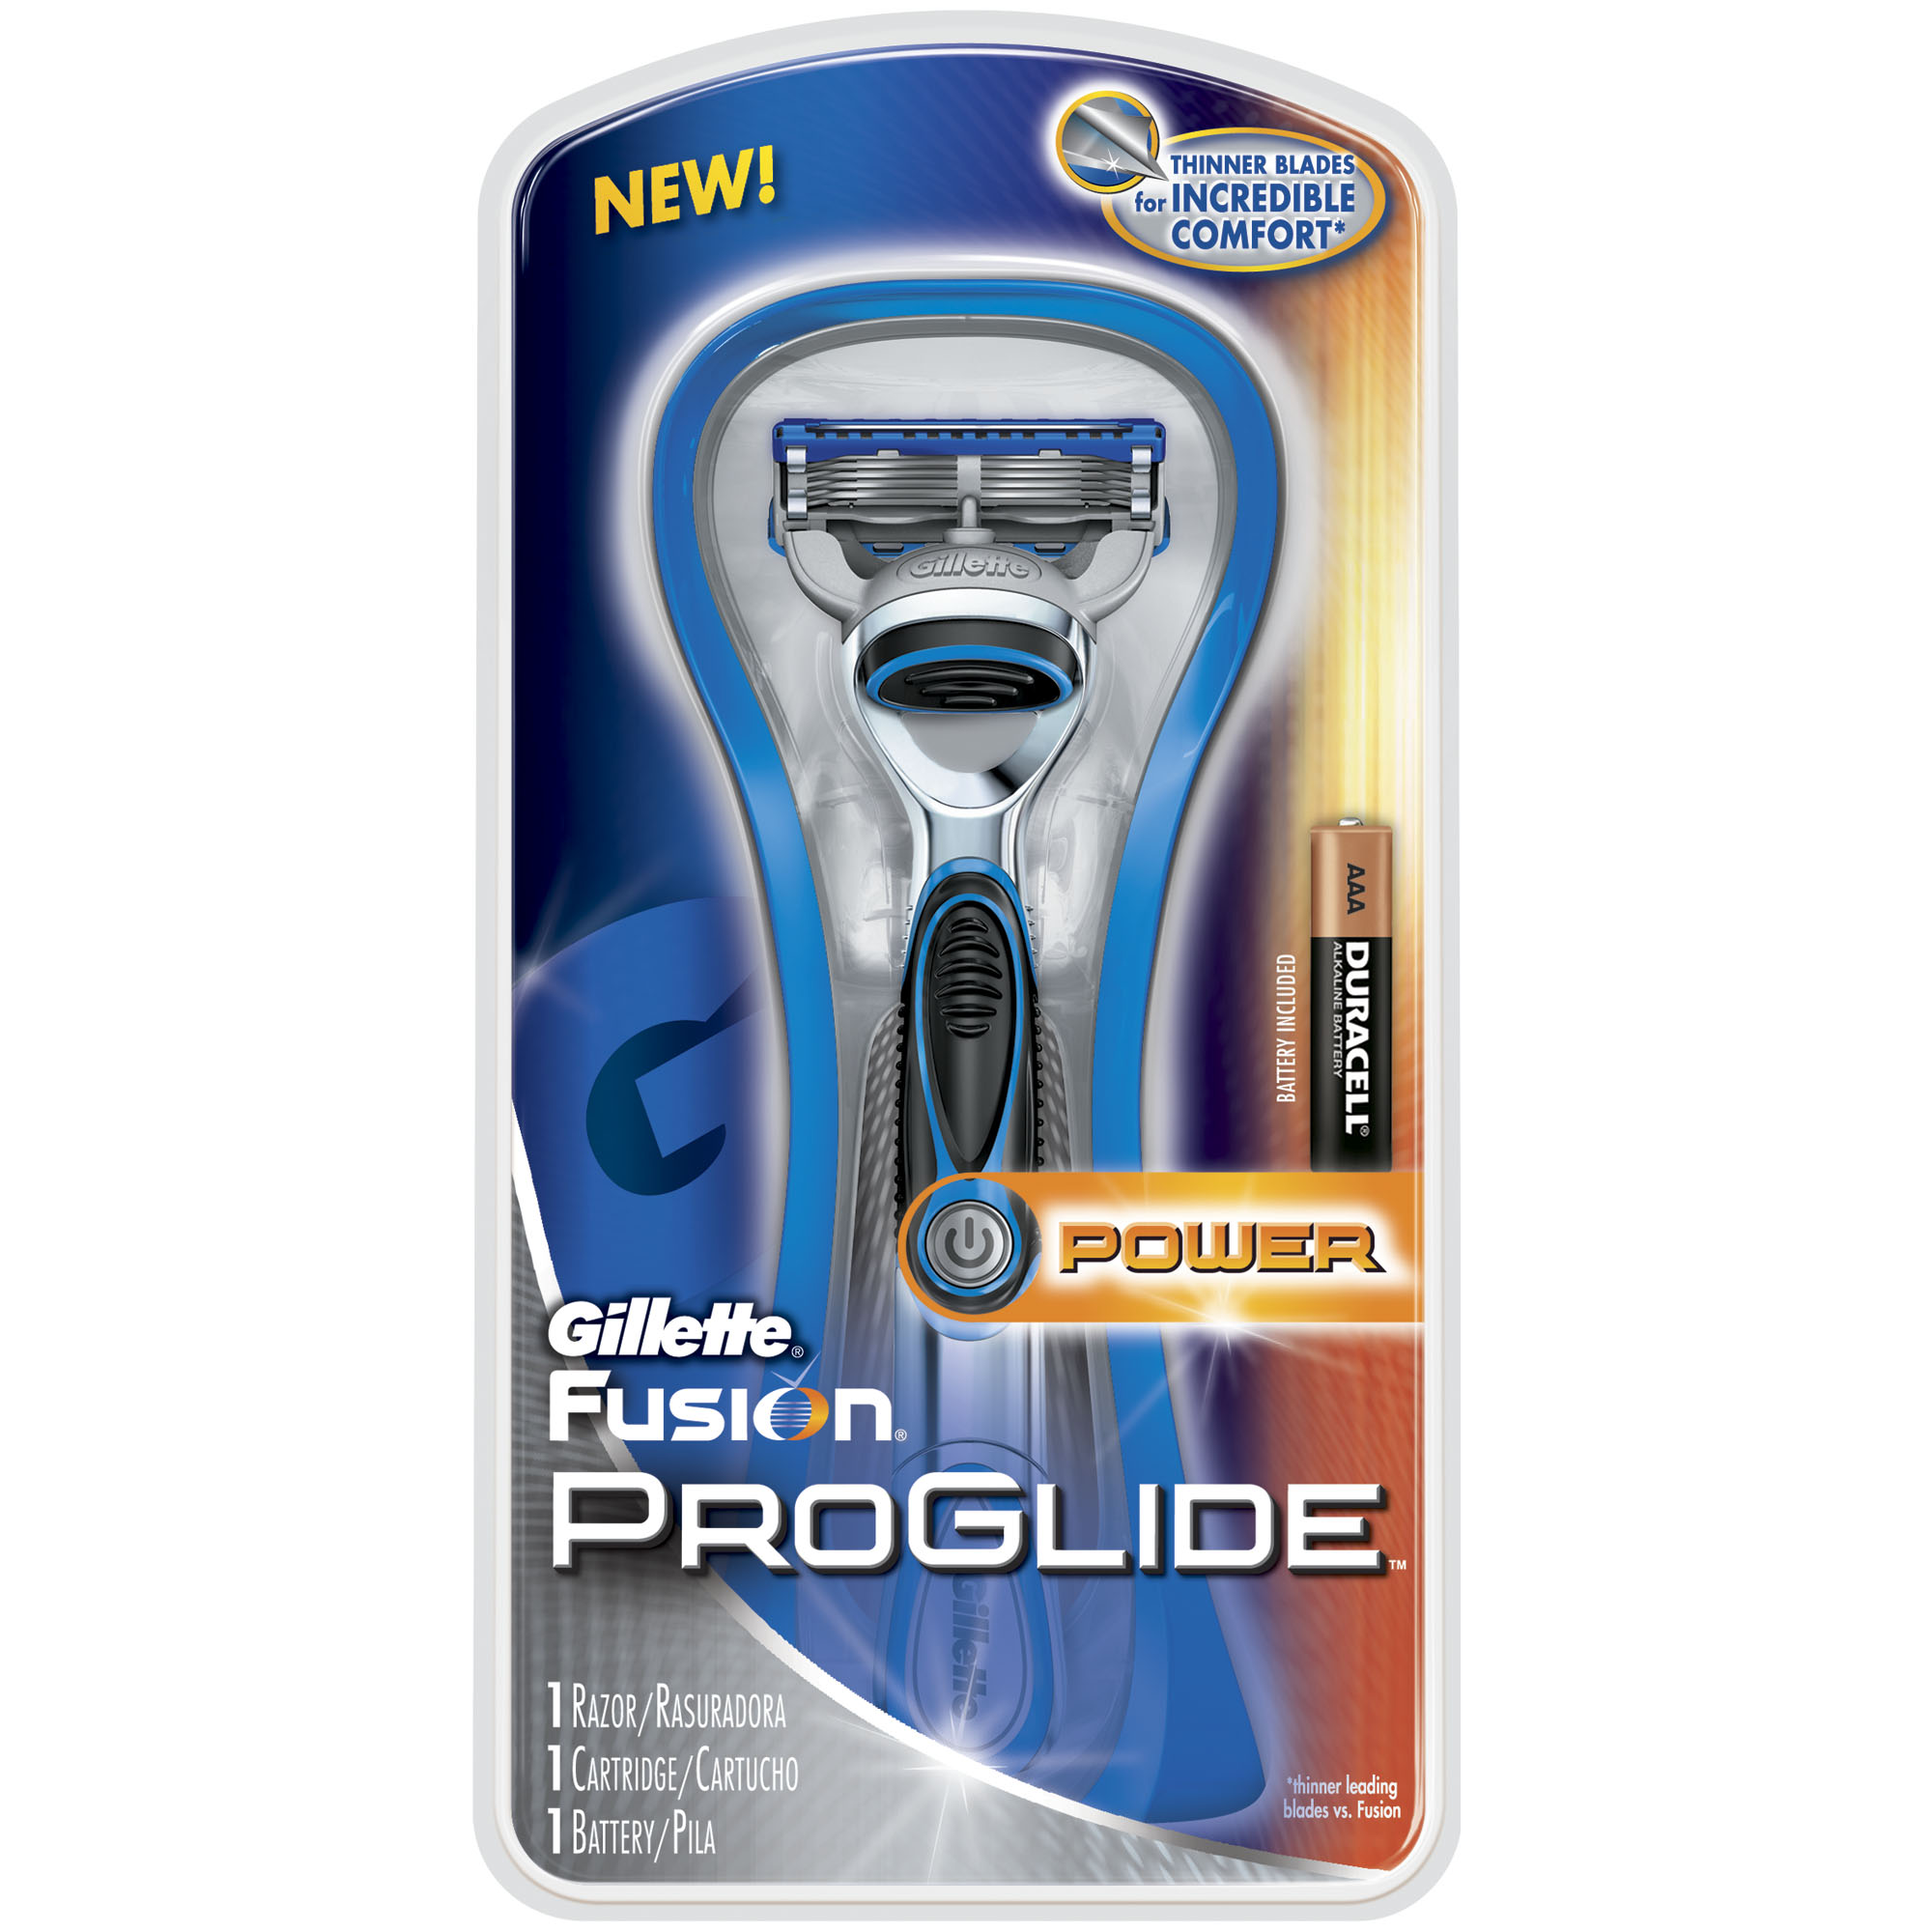 better than free gillette fusion proglide razors